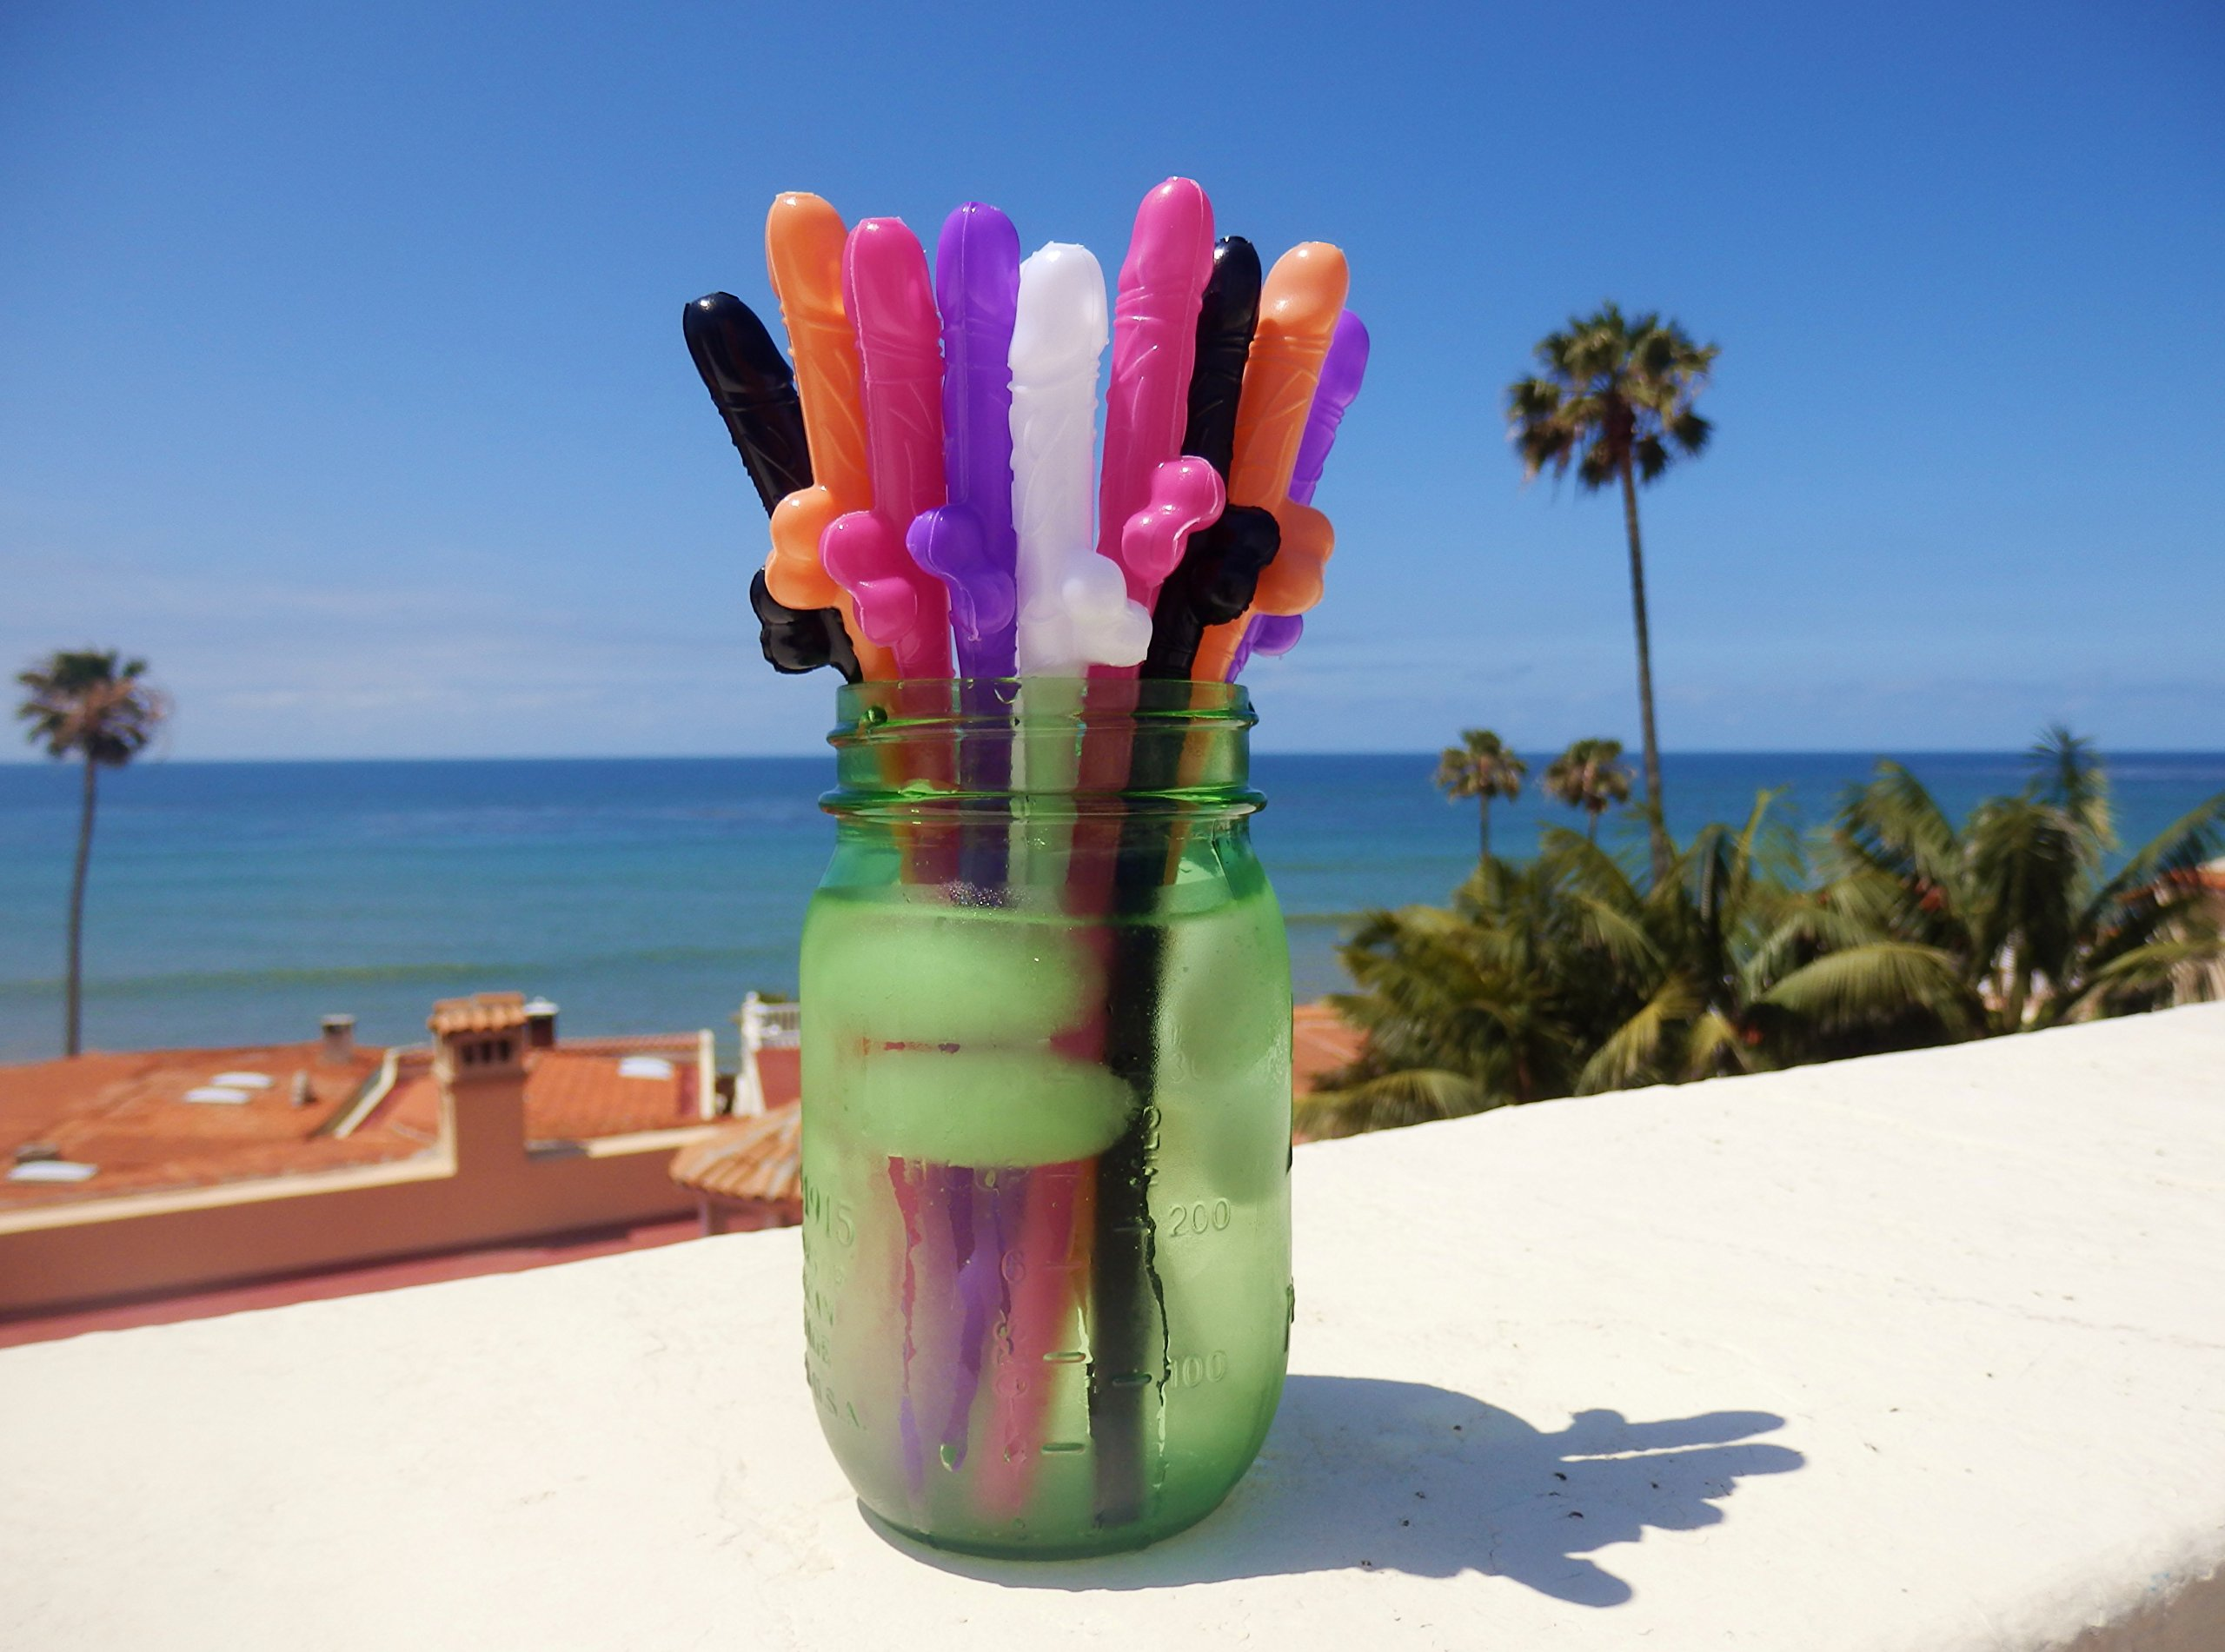 20 PACK - Mr. Winky's Drinkies Party Straws by Sterling James Co.